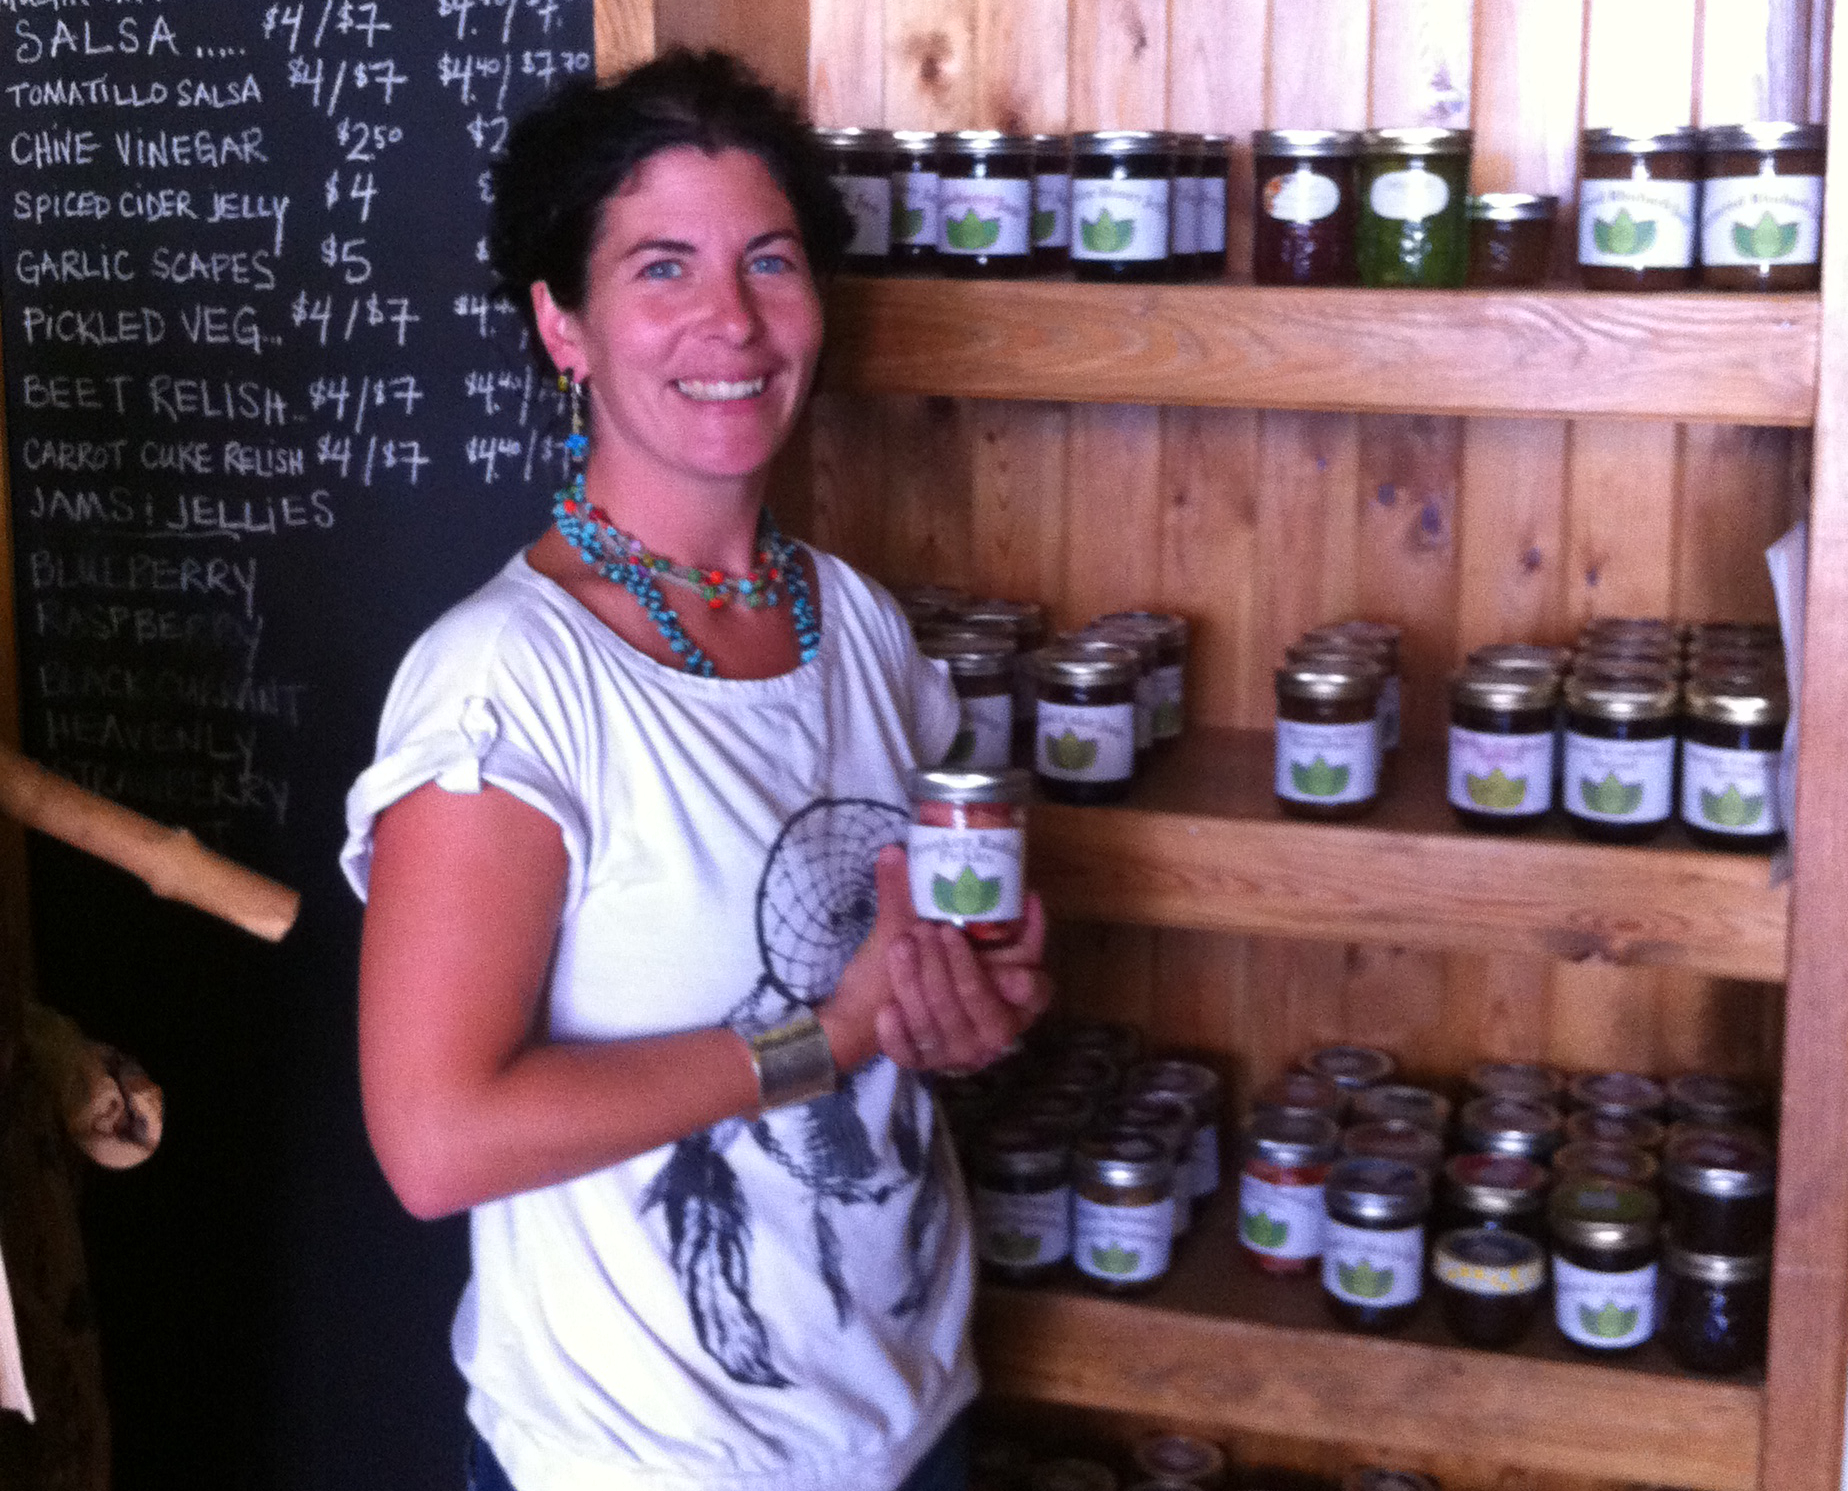 Image of Erin Chapelle, founder, standing in front of shelves showcasing products and has one sample in her hands